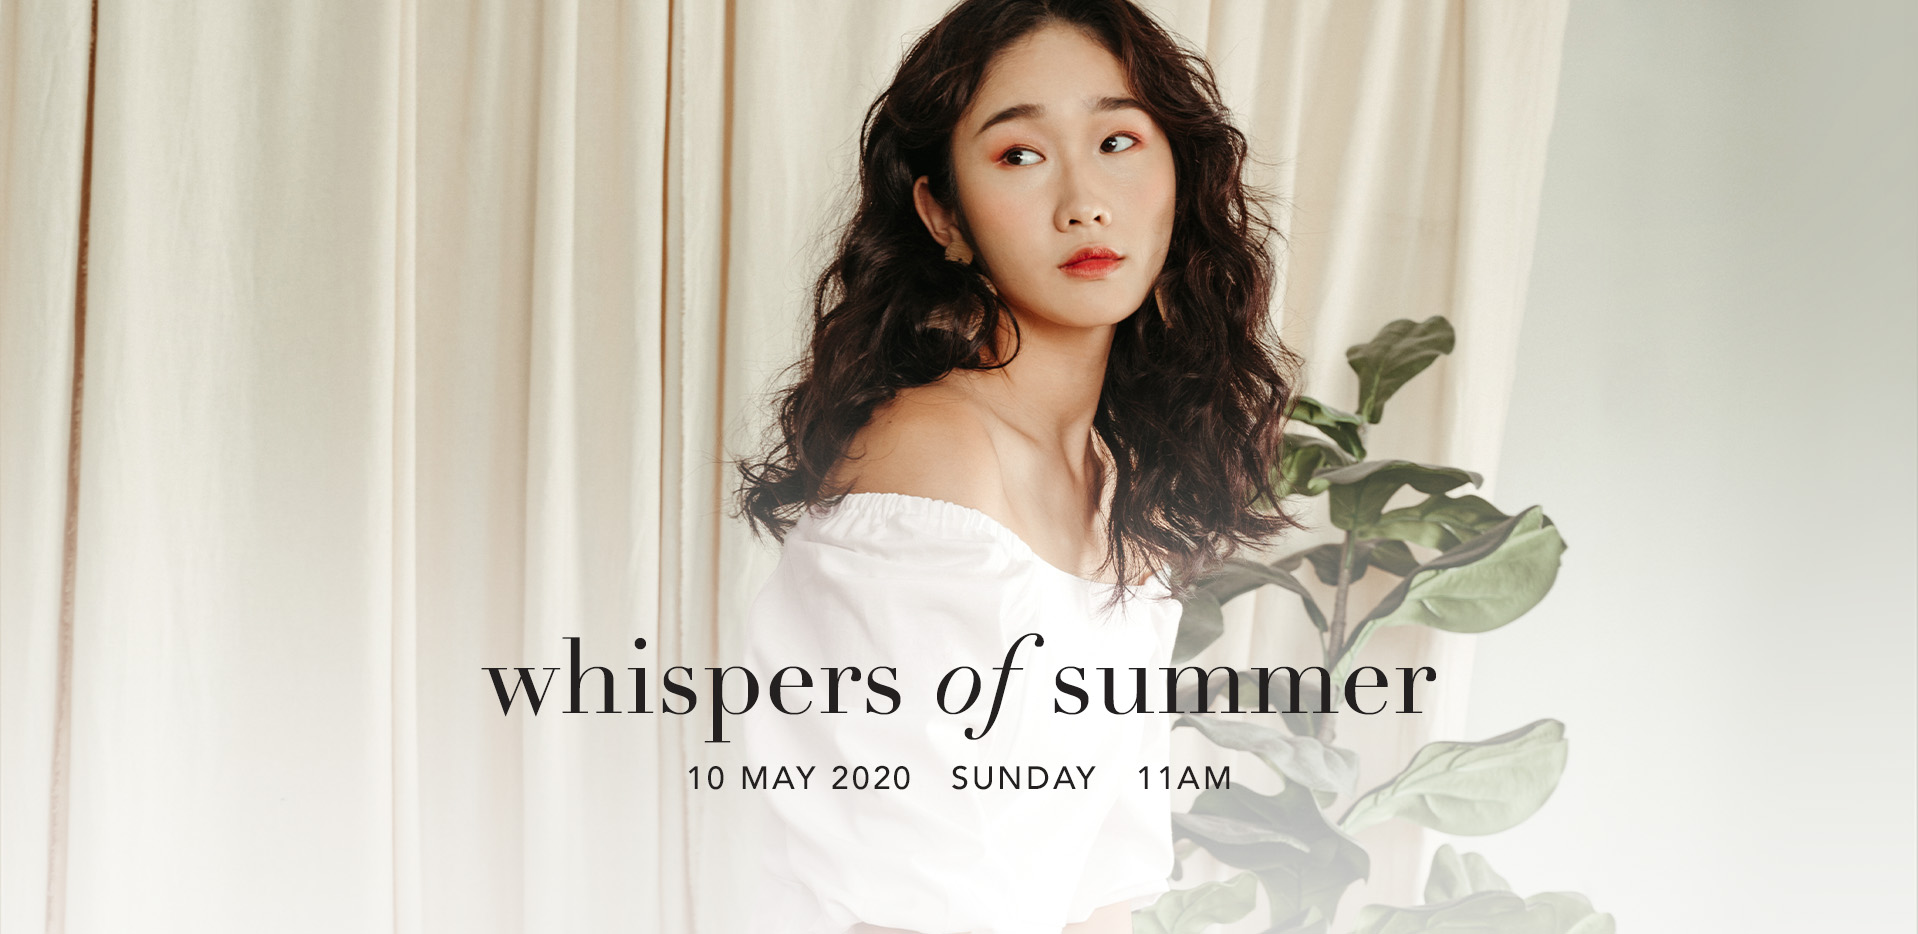 WHISPERS OF SUMMER